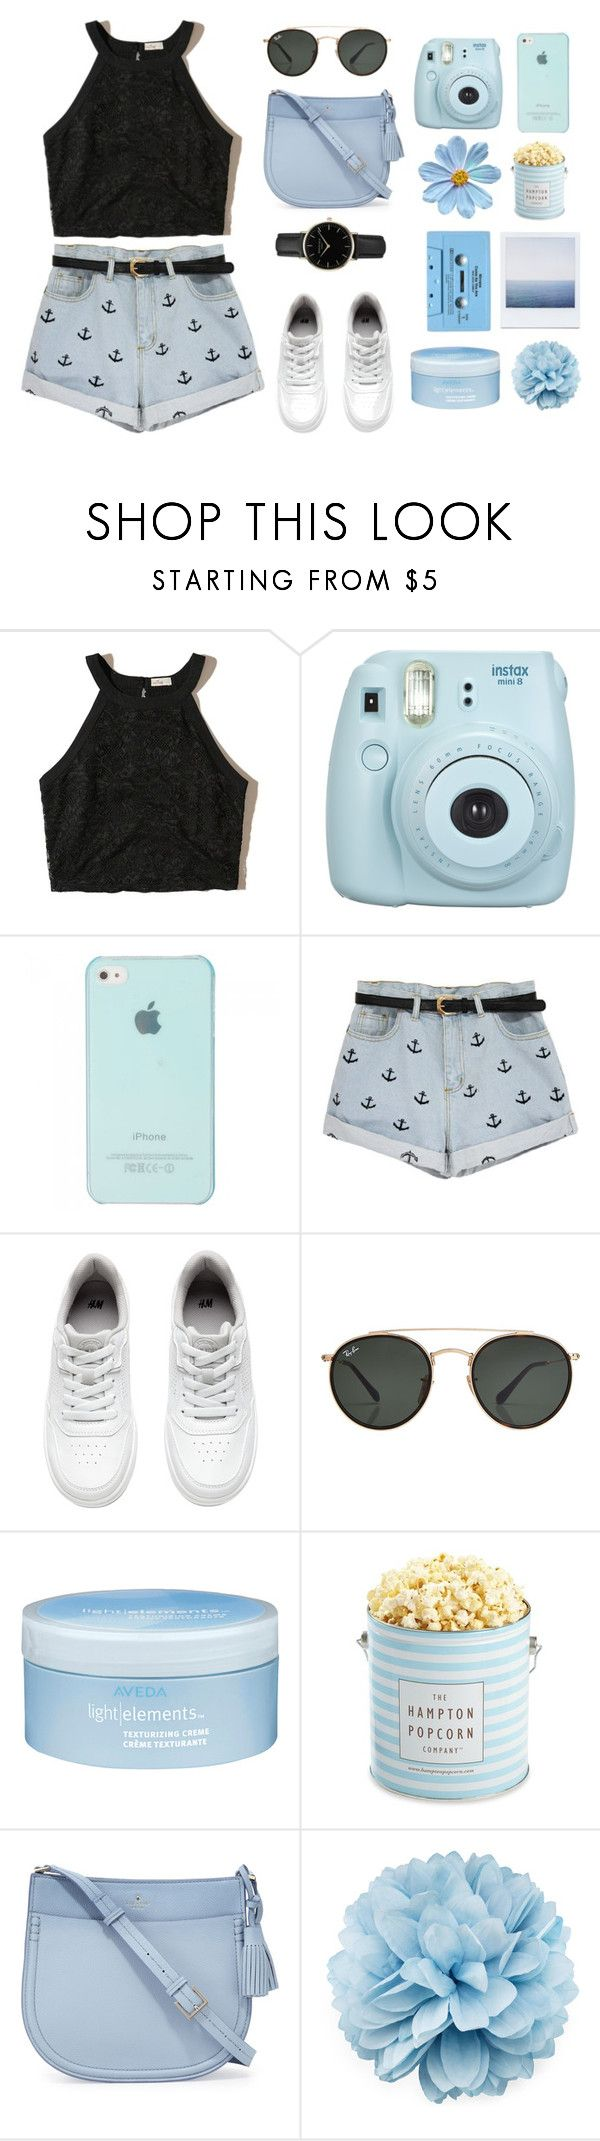 """Untitled #235"" by azizanisafitri on Polyvore featuring Hollister Co., Fujifilm, H&M, Ray-Ban, CASSETTE, Aveda, The Hampton Popcorn Company, Kate Spade, Gucci and ROSEFIELD"